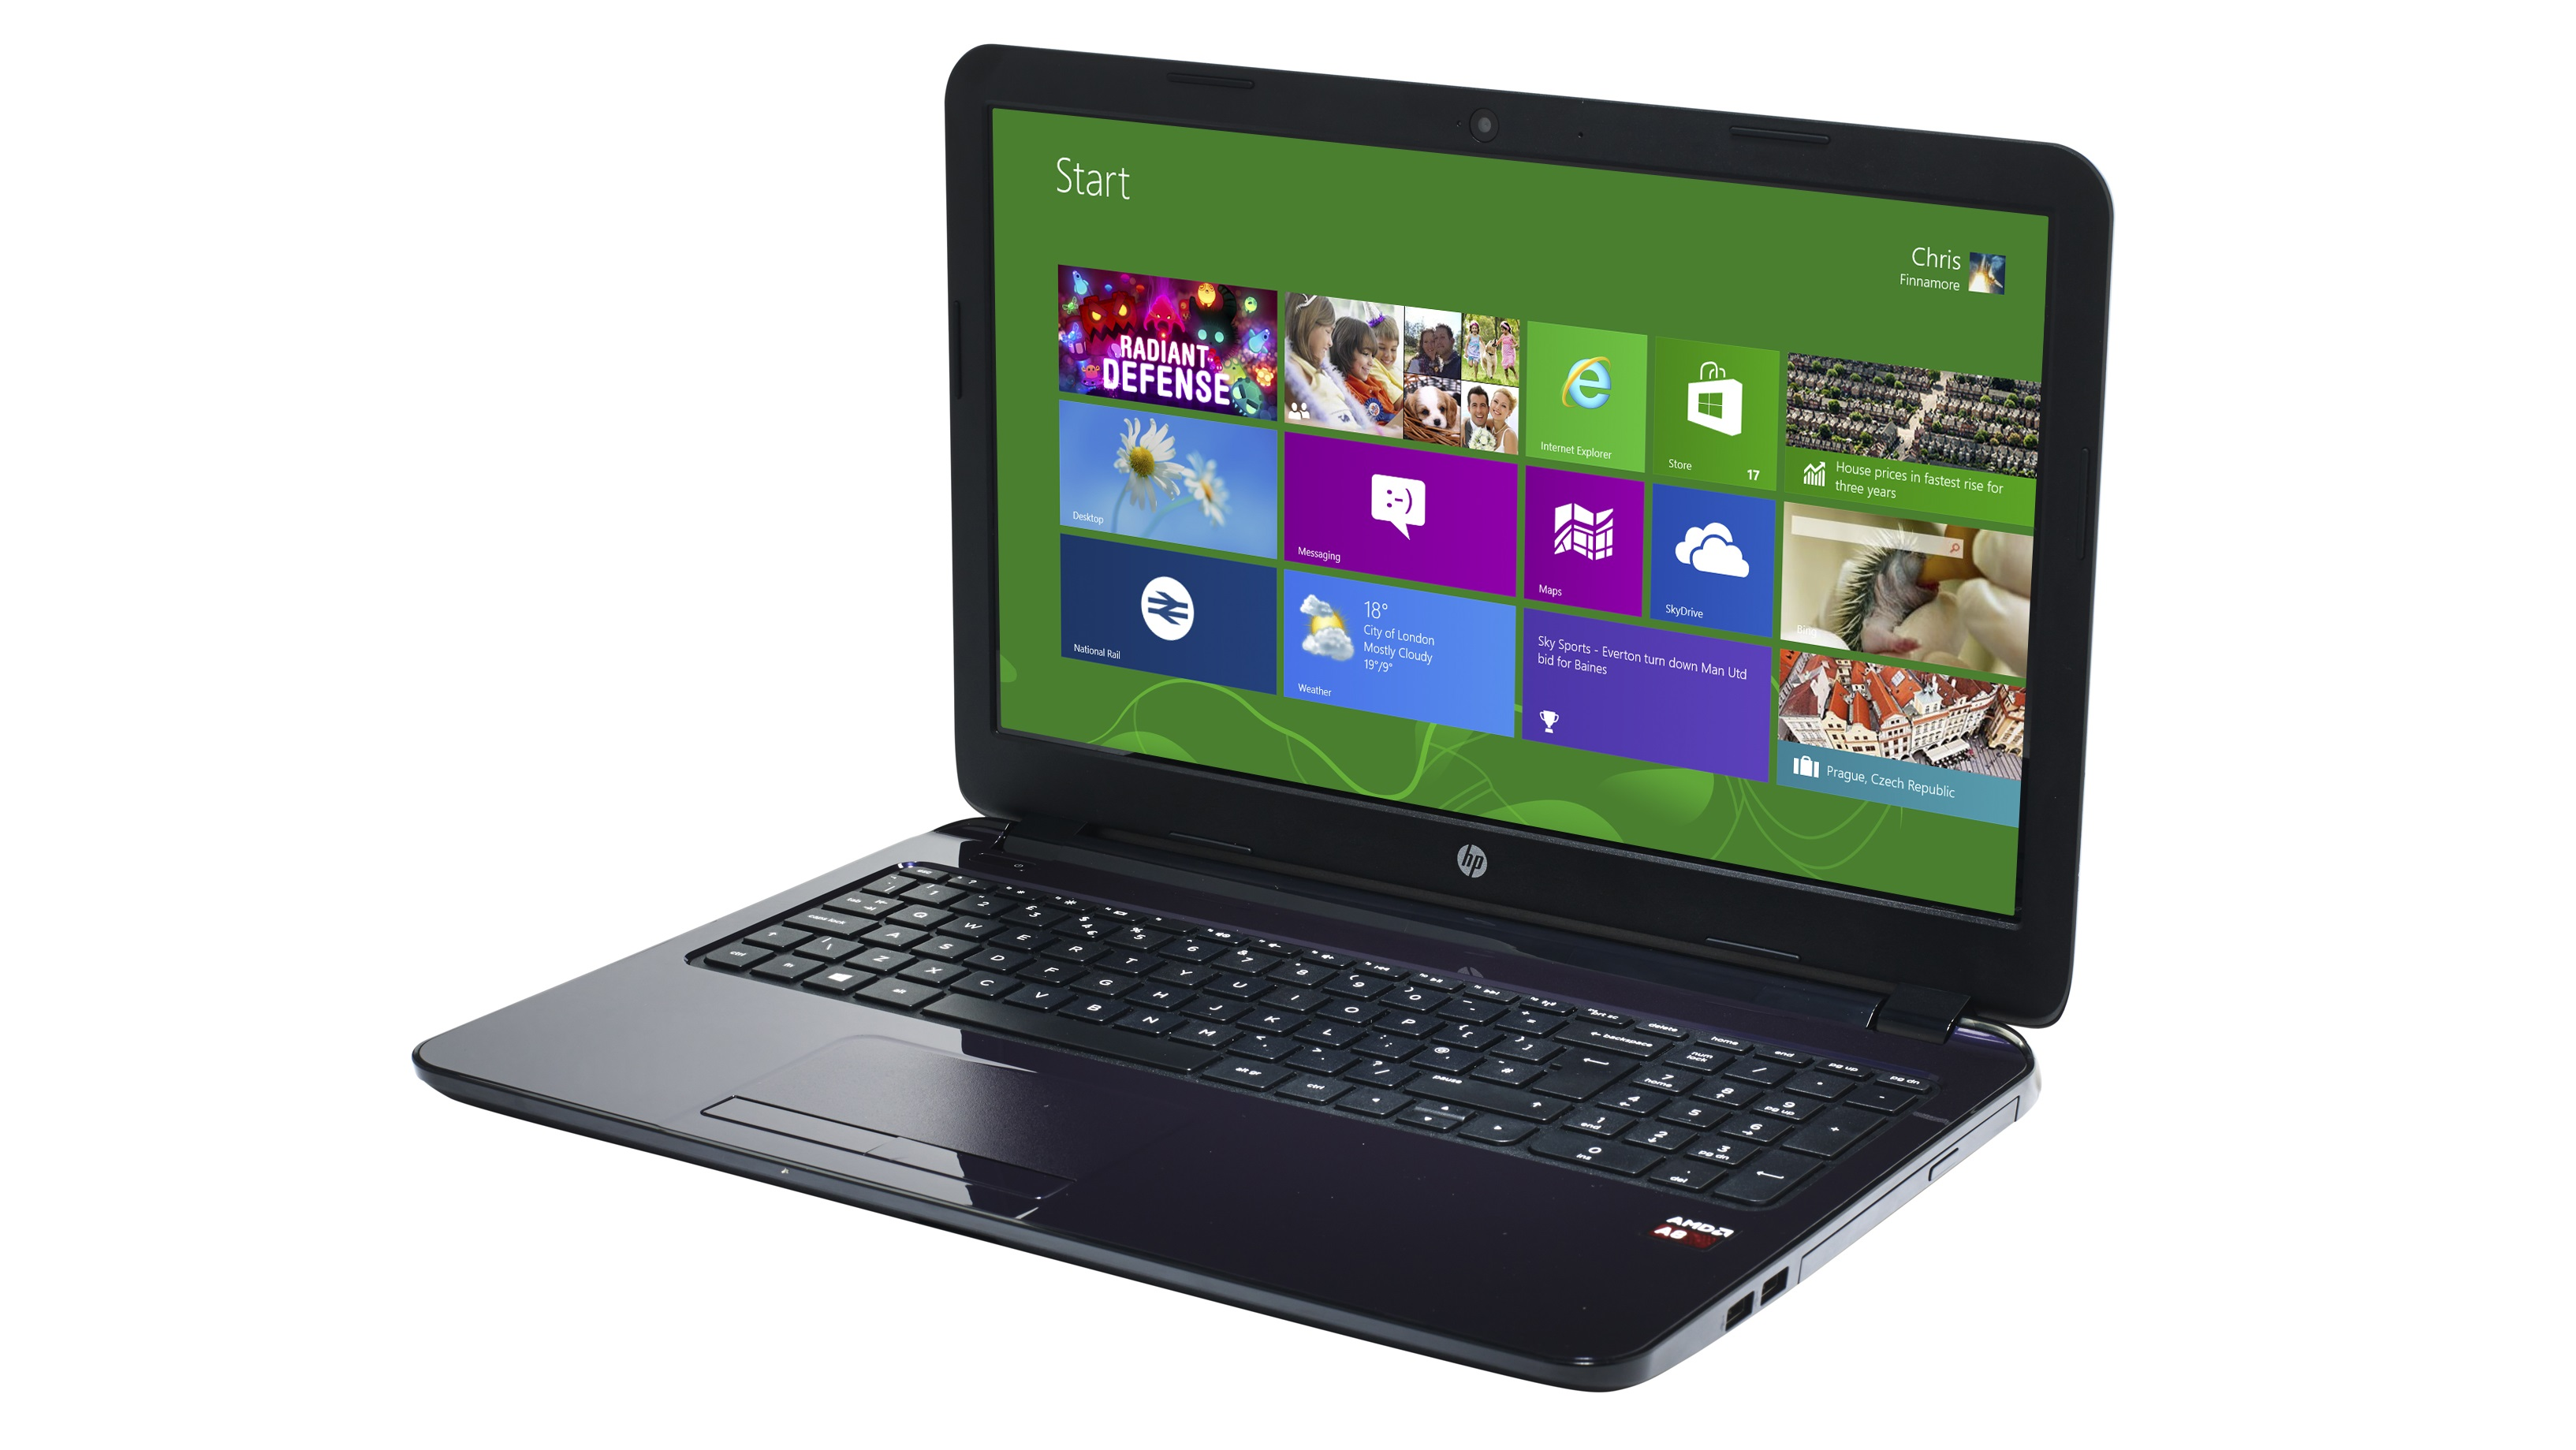 how to delete files on hp laptop